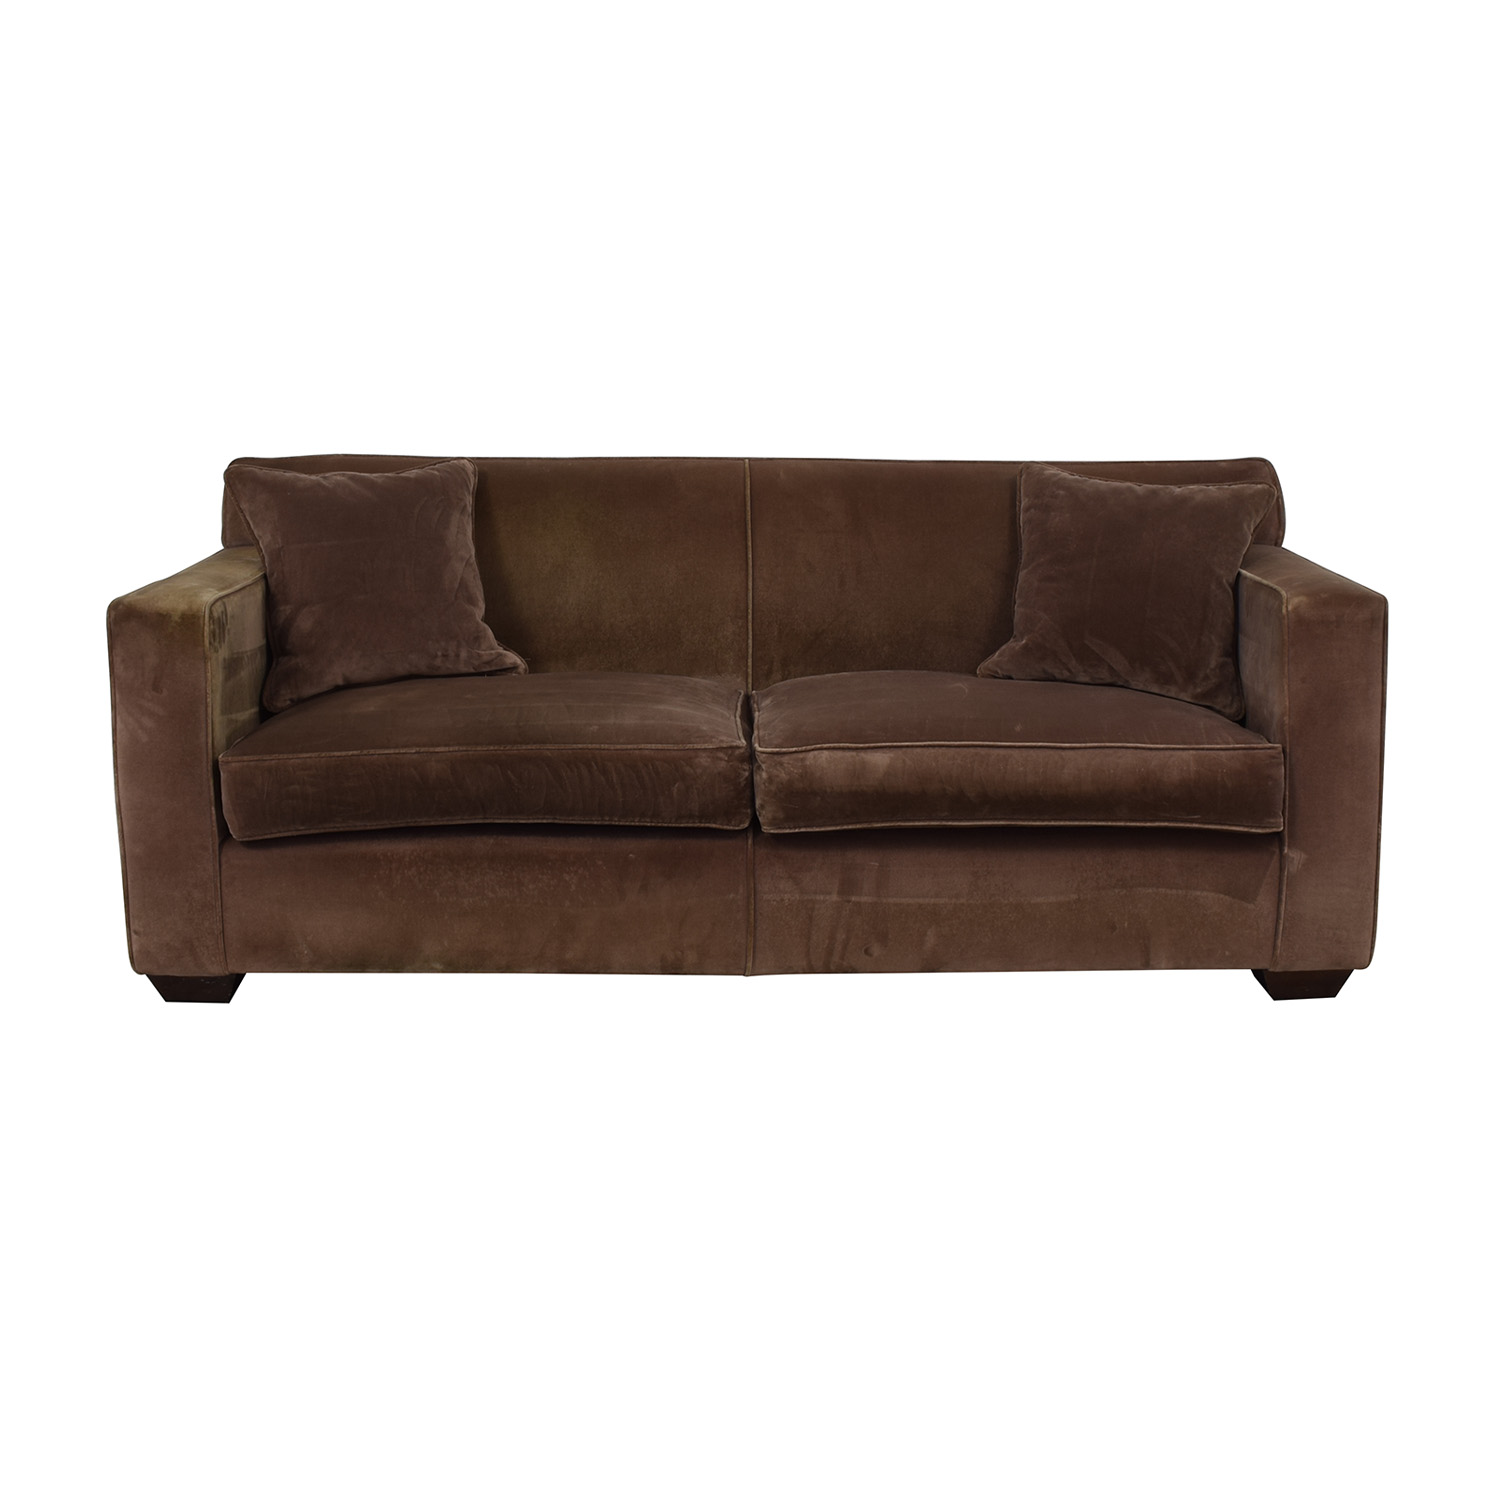 Classic Sofa Classic Sofa Custom Two Seat Sofa on sale